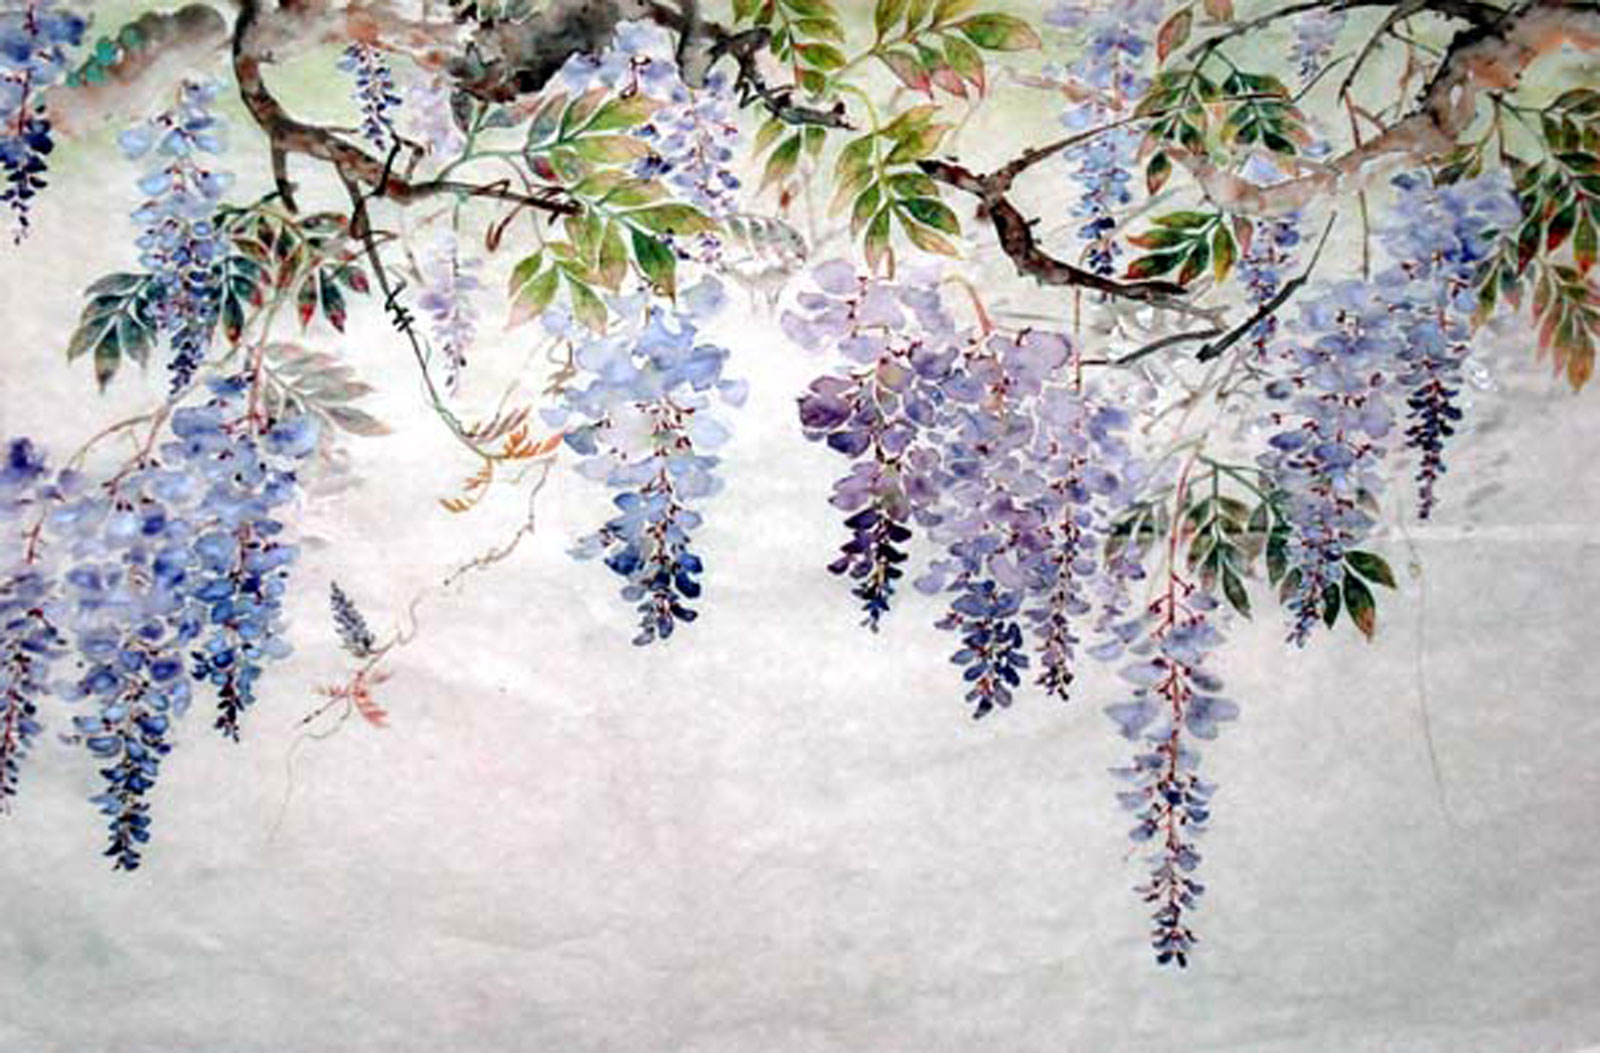 Purple Wisteria blossoms hanging from the vine.